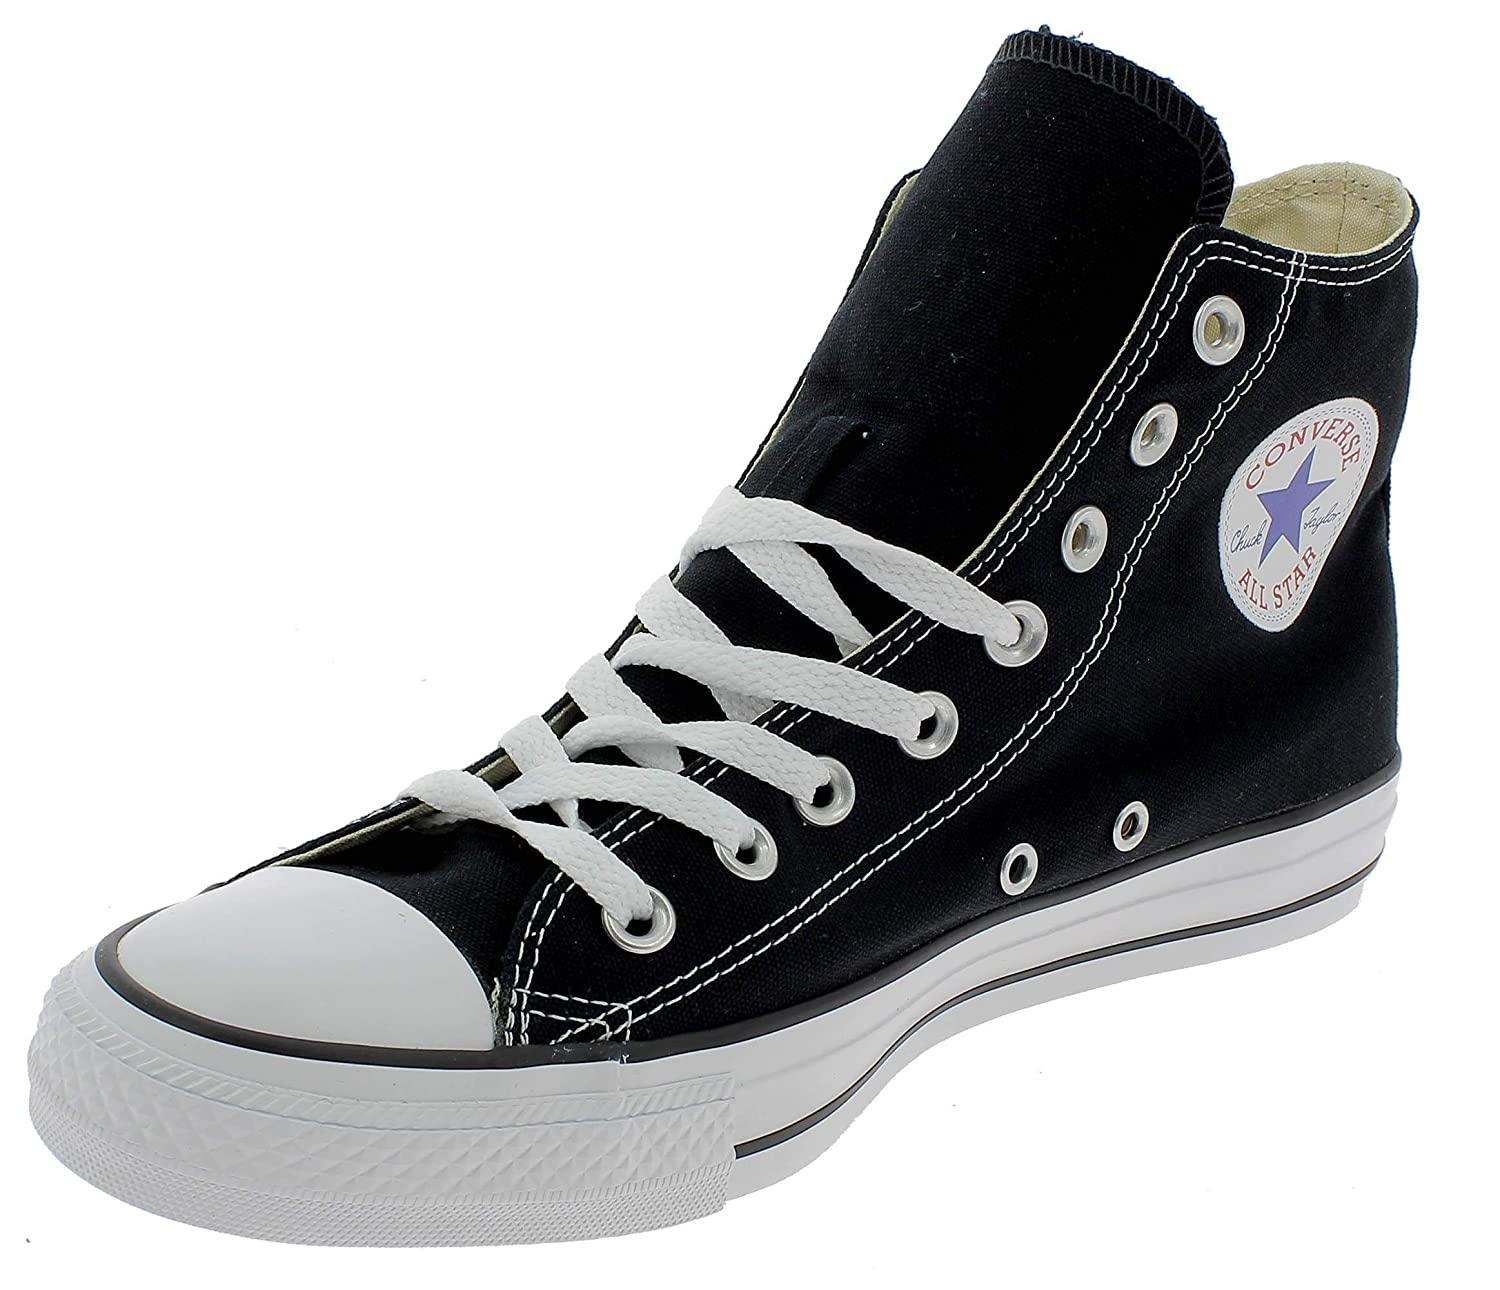 TALLA 45 EU. Converse Zapatillas As Spty H